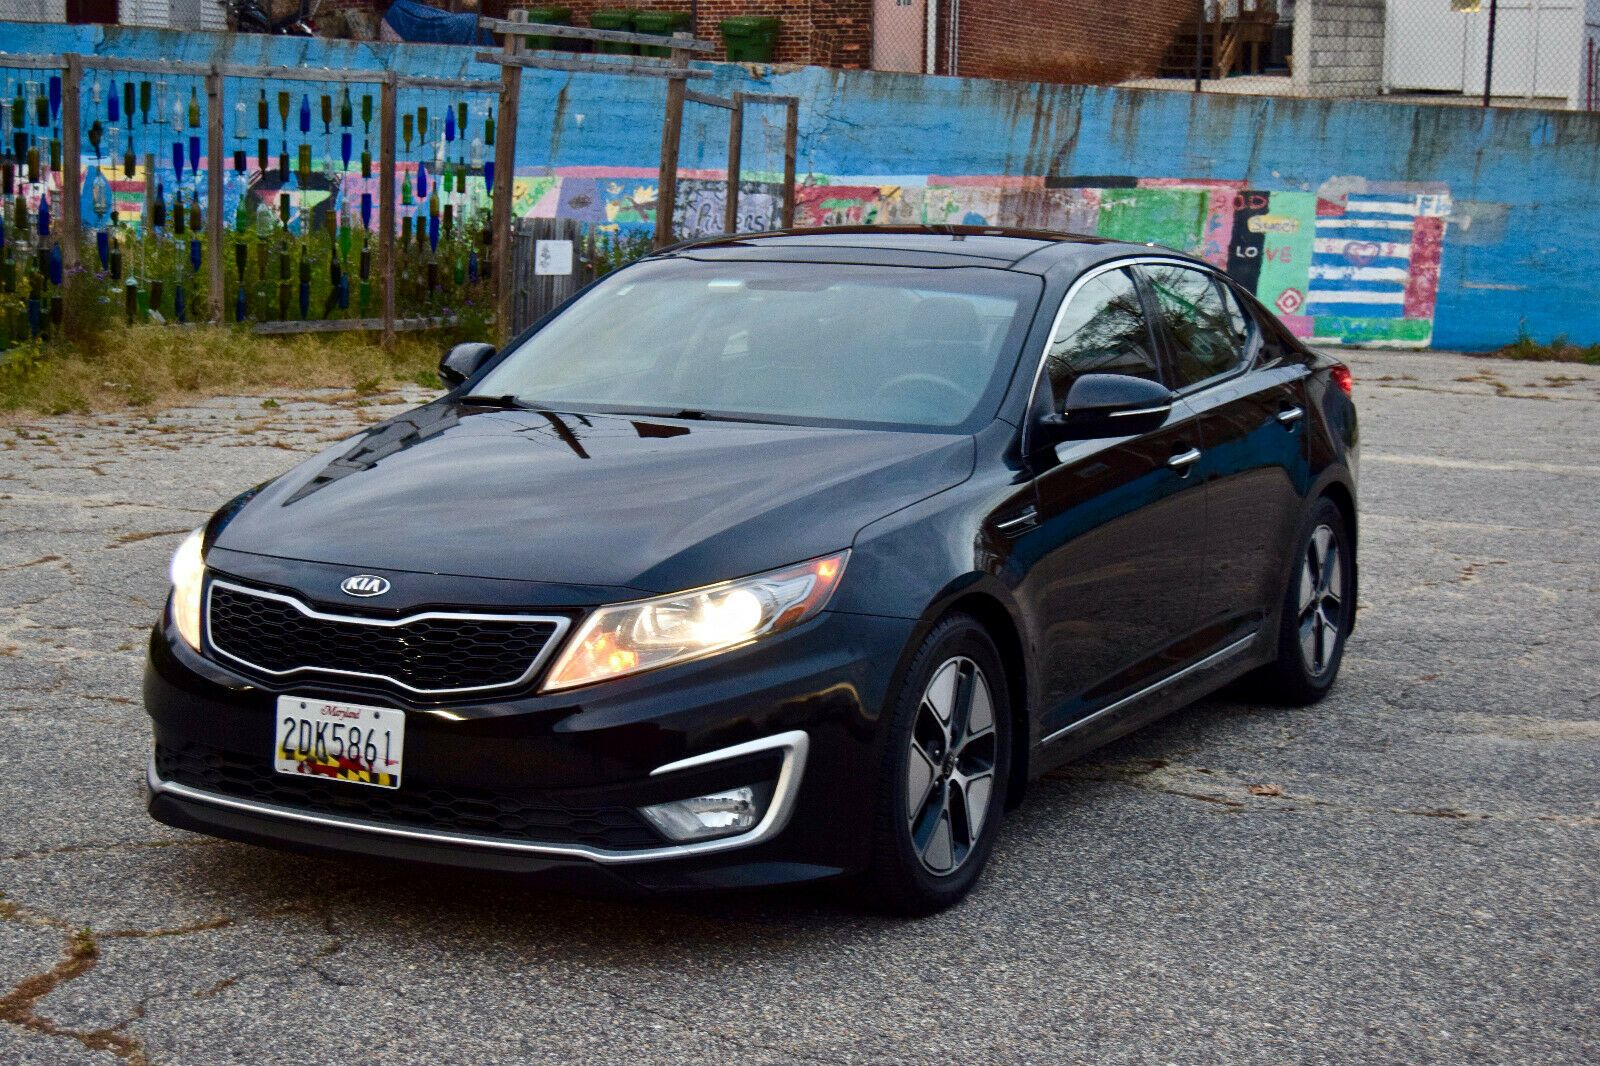 Used 2012 Kia Optima Hybrid Fully Loaded 2012 Kia Optima Hybrid One Owner Vehicle No Accidents Clean Title 2020 Is In Stock And For Sale 24carshop Com Kia Optima Kia Technology Package